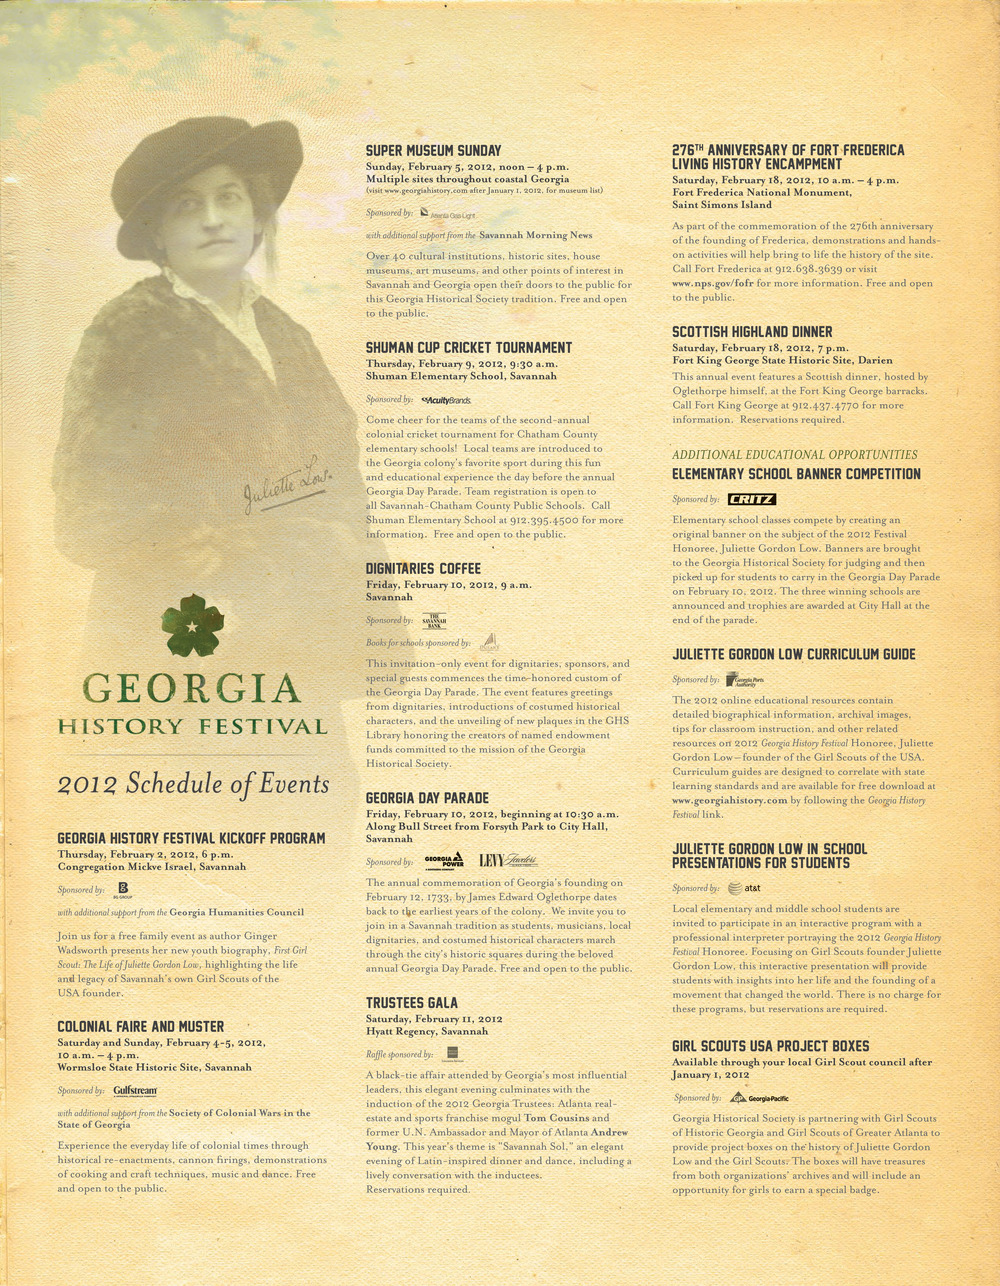 GHF2012_scheduleofevents-1.jpg